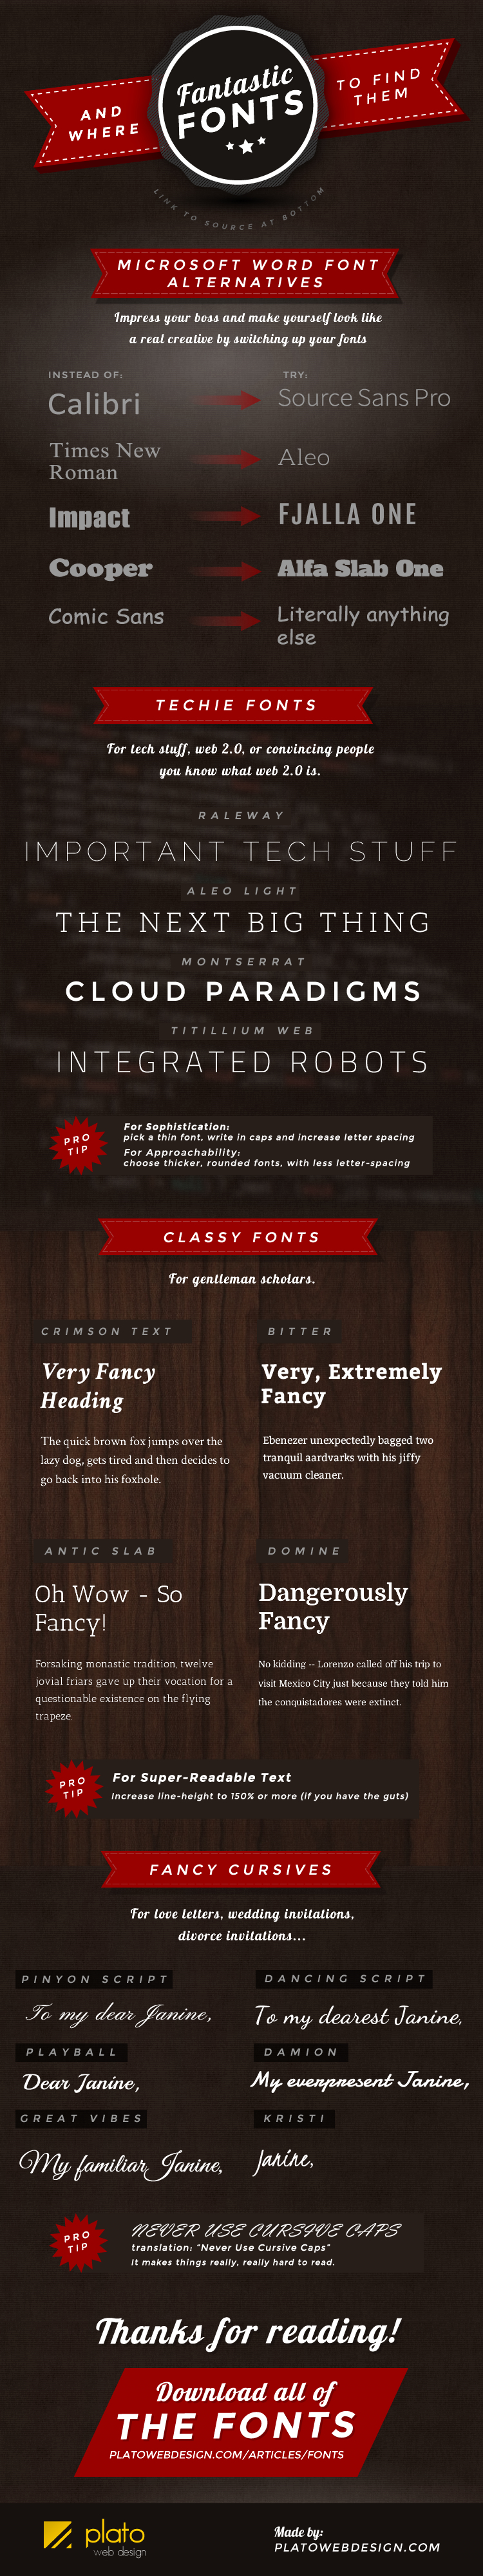 having trouble reading the infographic click on the image to make it larger - Free Resume Fonts